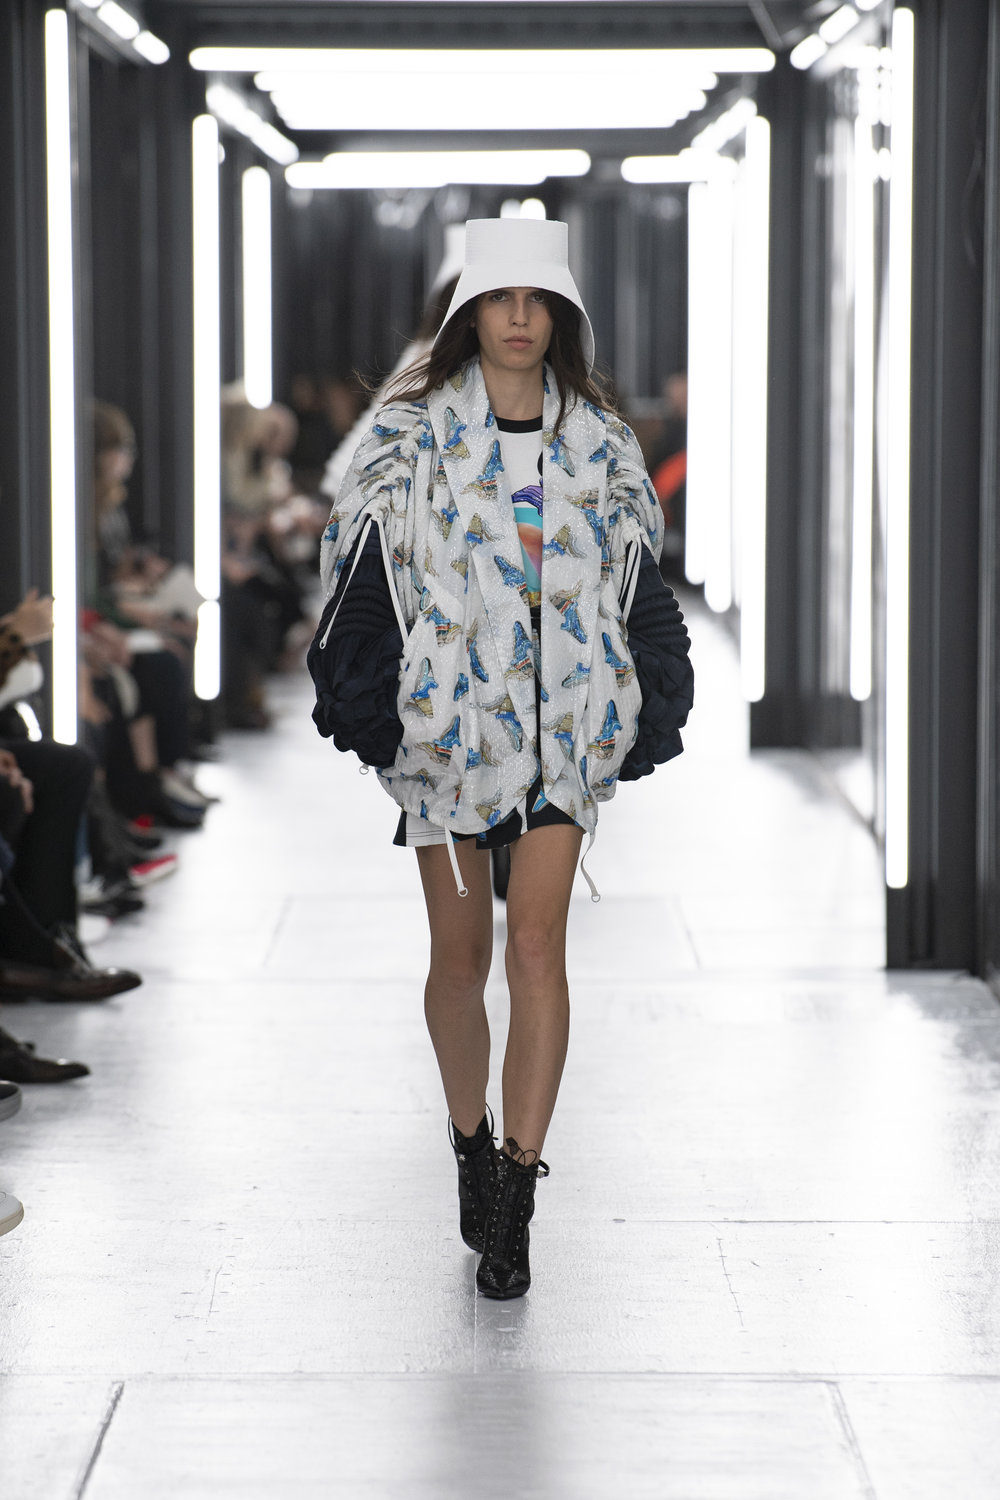 Louis_Vuitton_SS19_Look_08.jpg